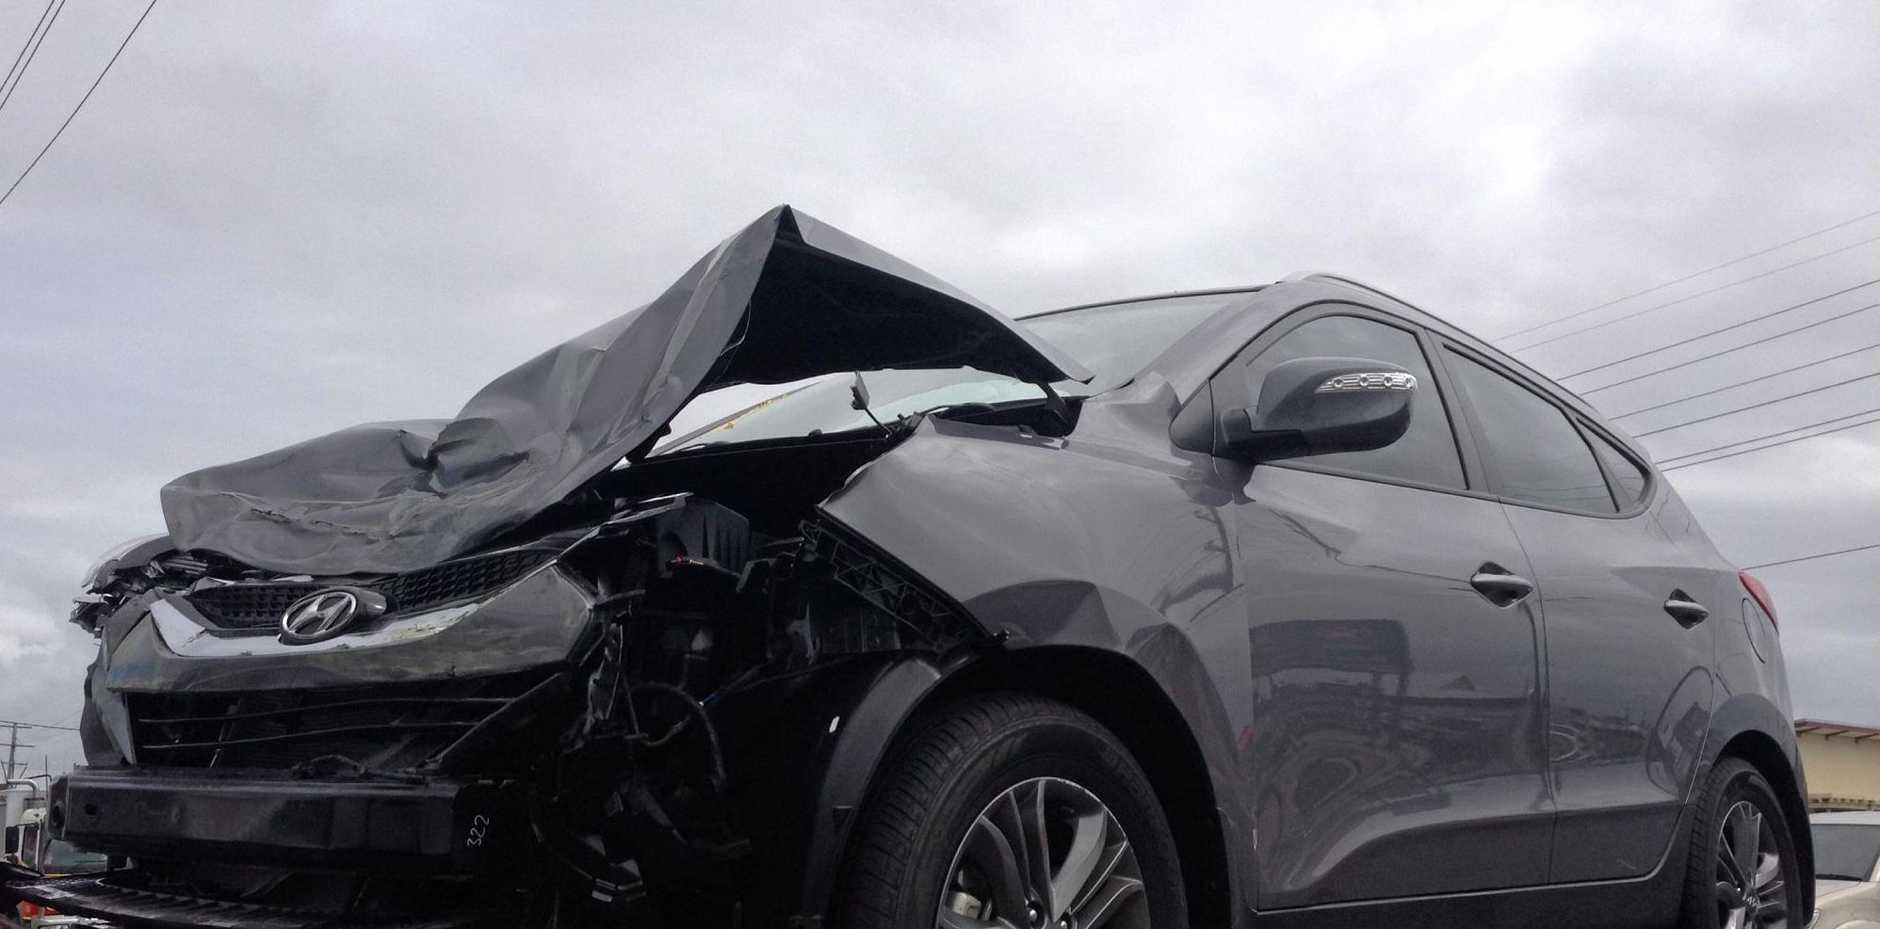 A Hyundai SUV after being involved in a road traffic crash at the corner of Victoria and Tennyson Sts in Mackay.